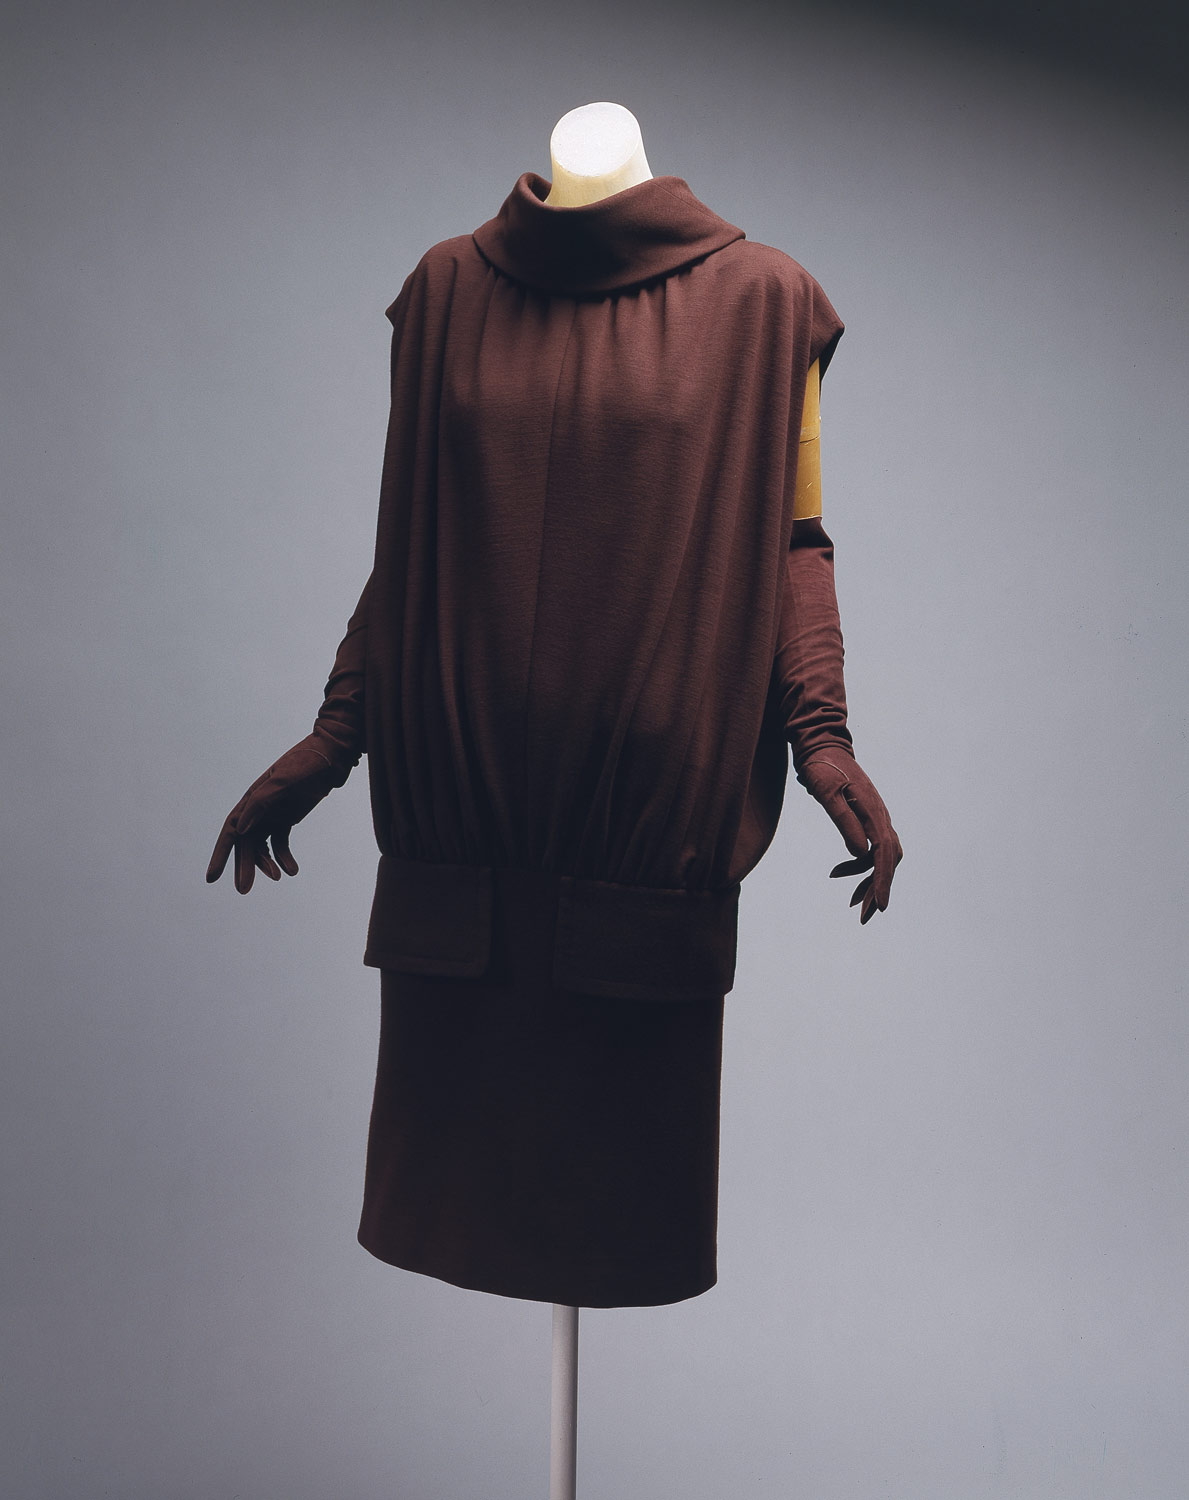 cristobal balenciaga 1895 1972 essay heilbrunn timeline of dress dress